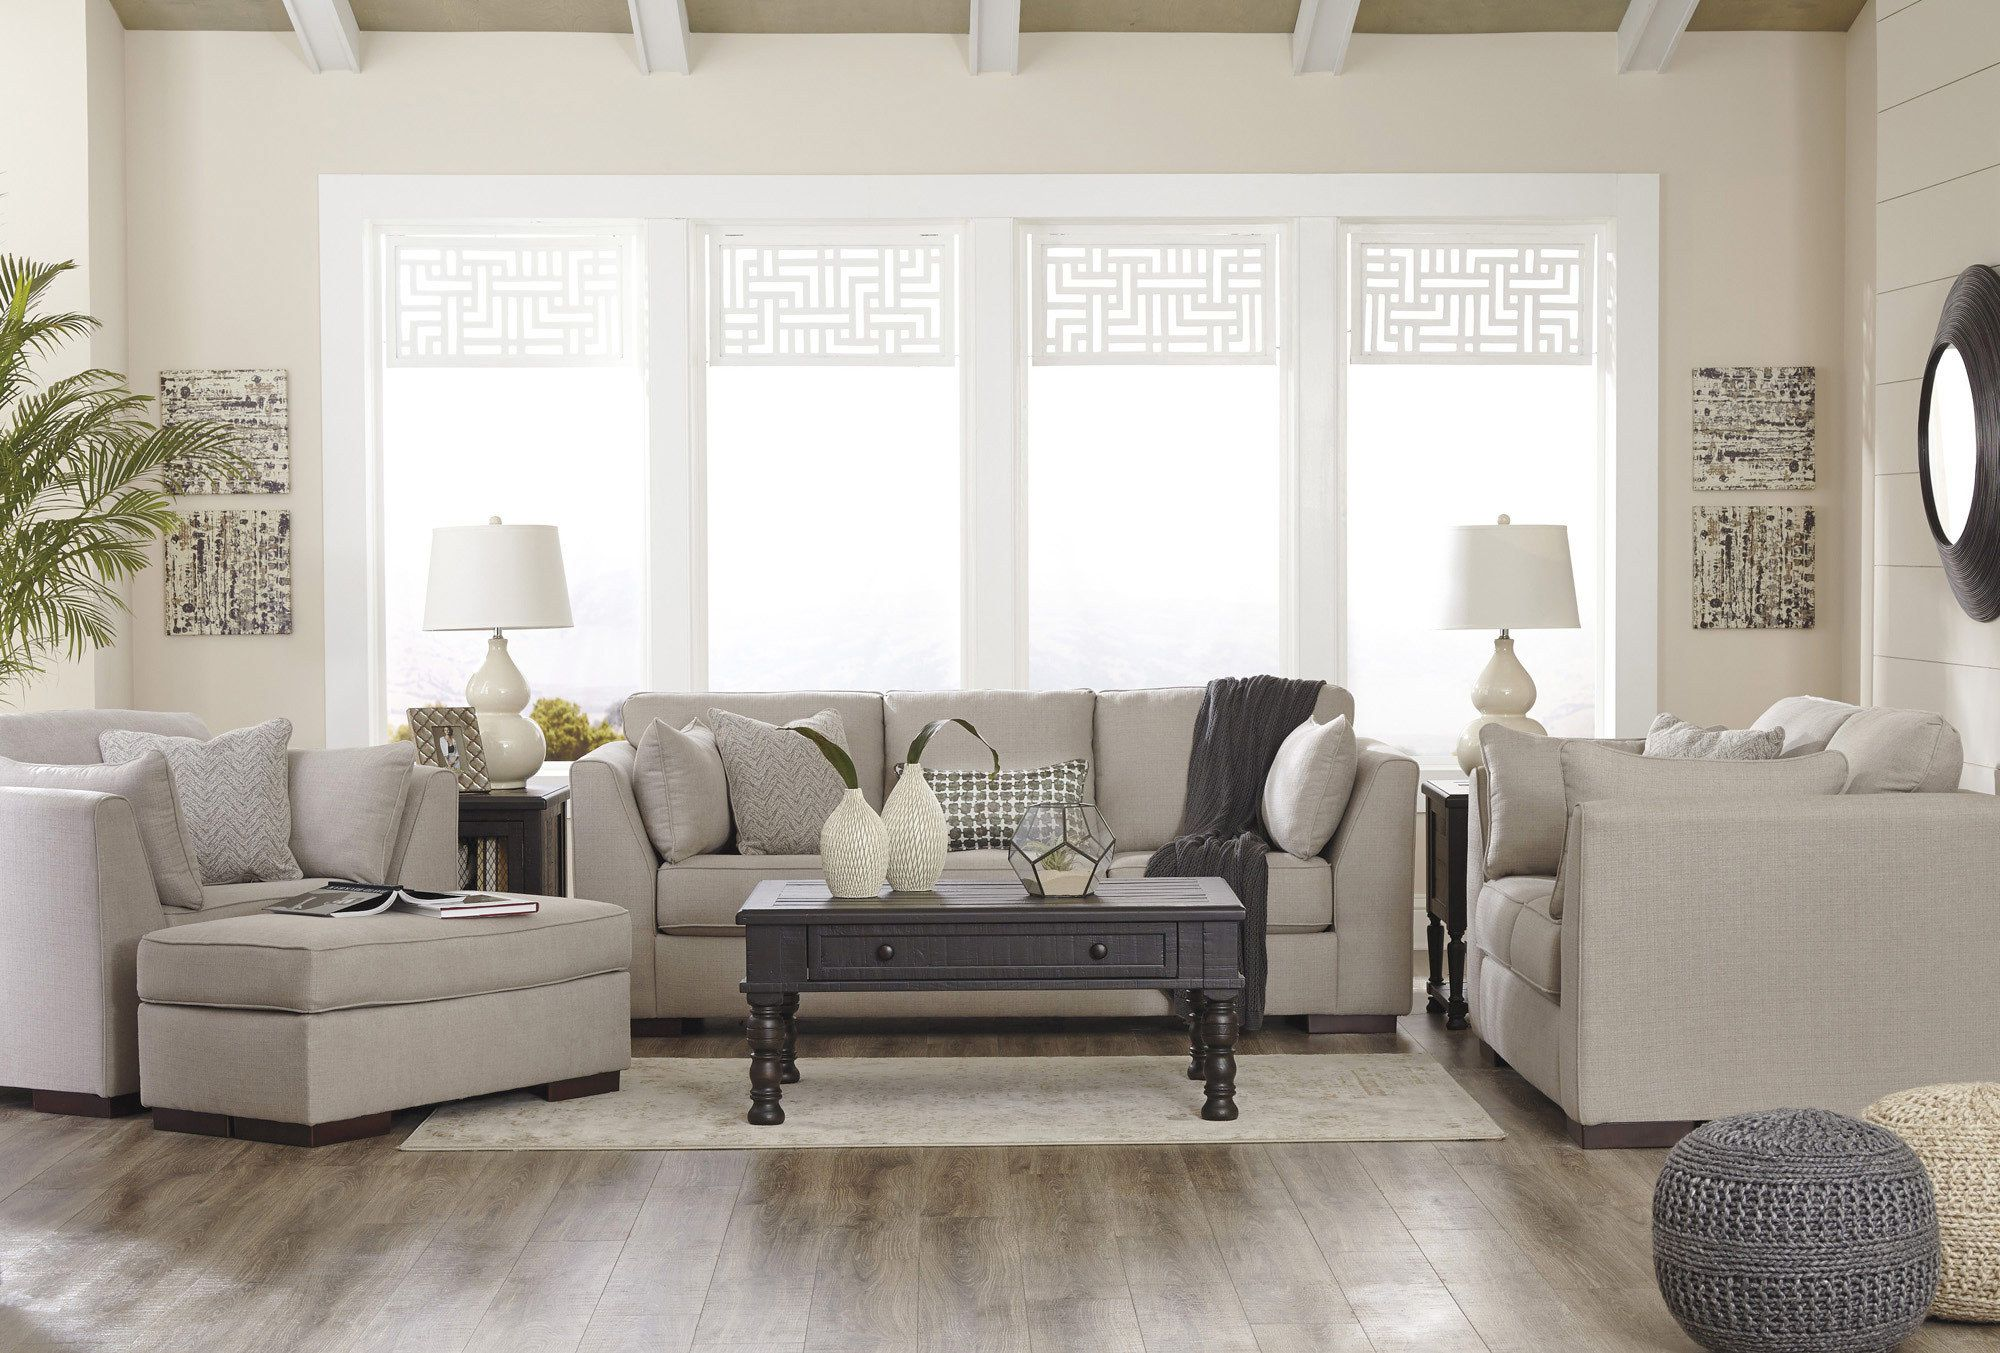 Lanier Living Room Sofa Set by Ashley - Home Gallery Stores | Living ...